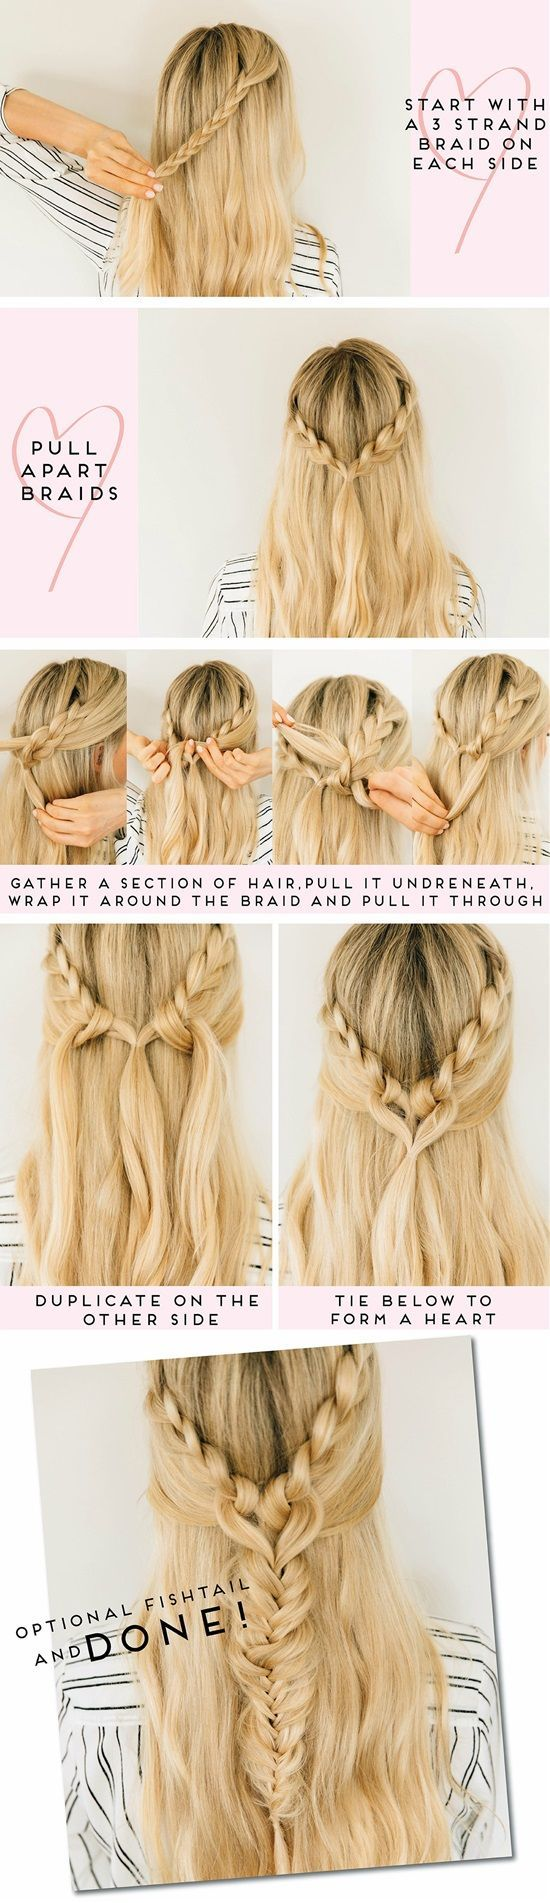 15 Ways To Make Braids Interesting Again